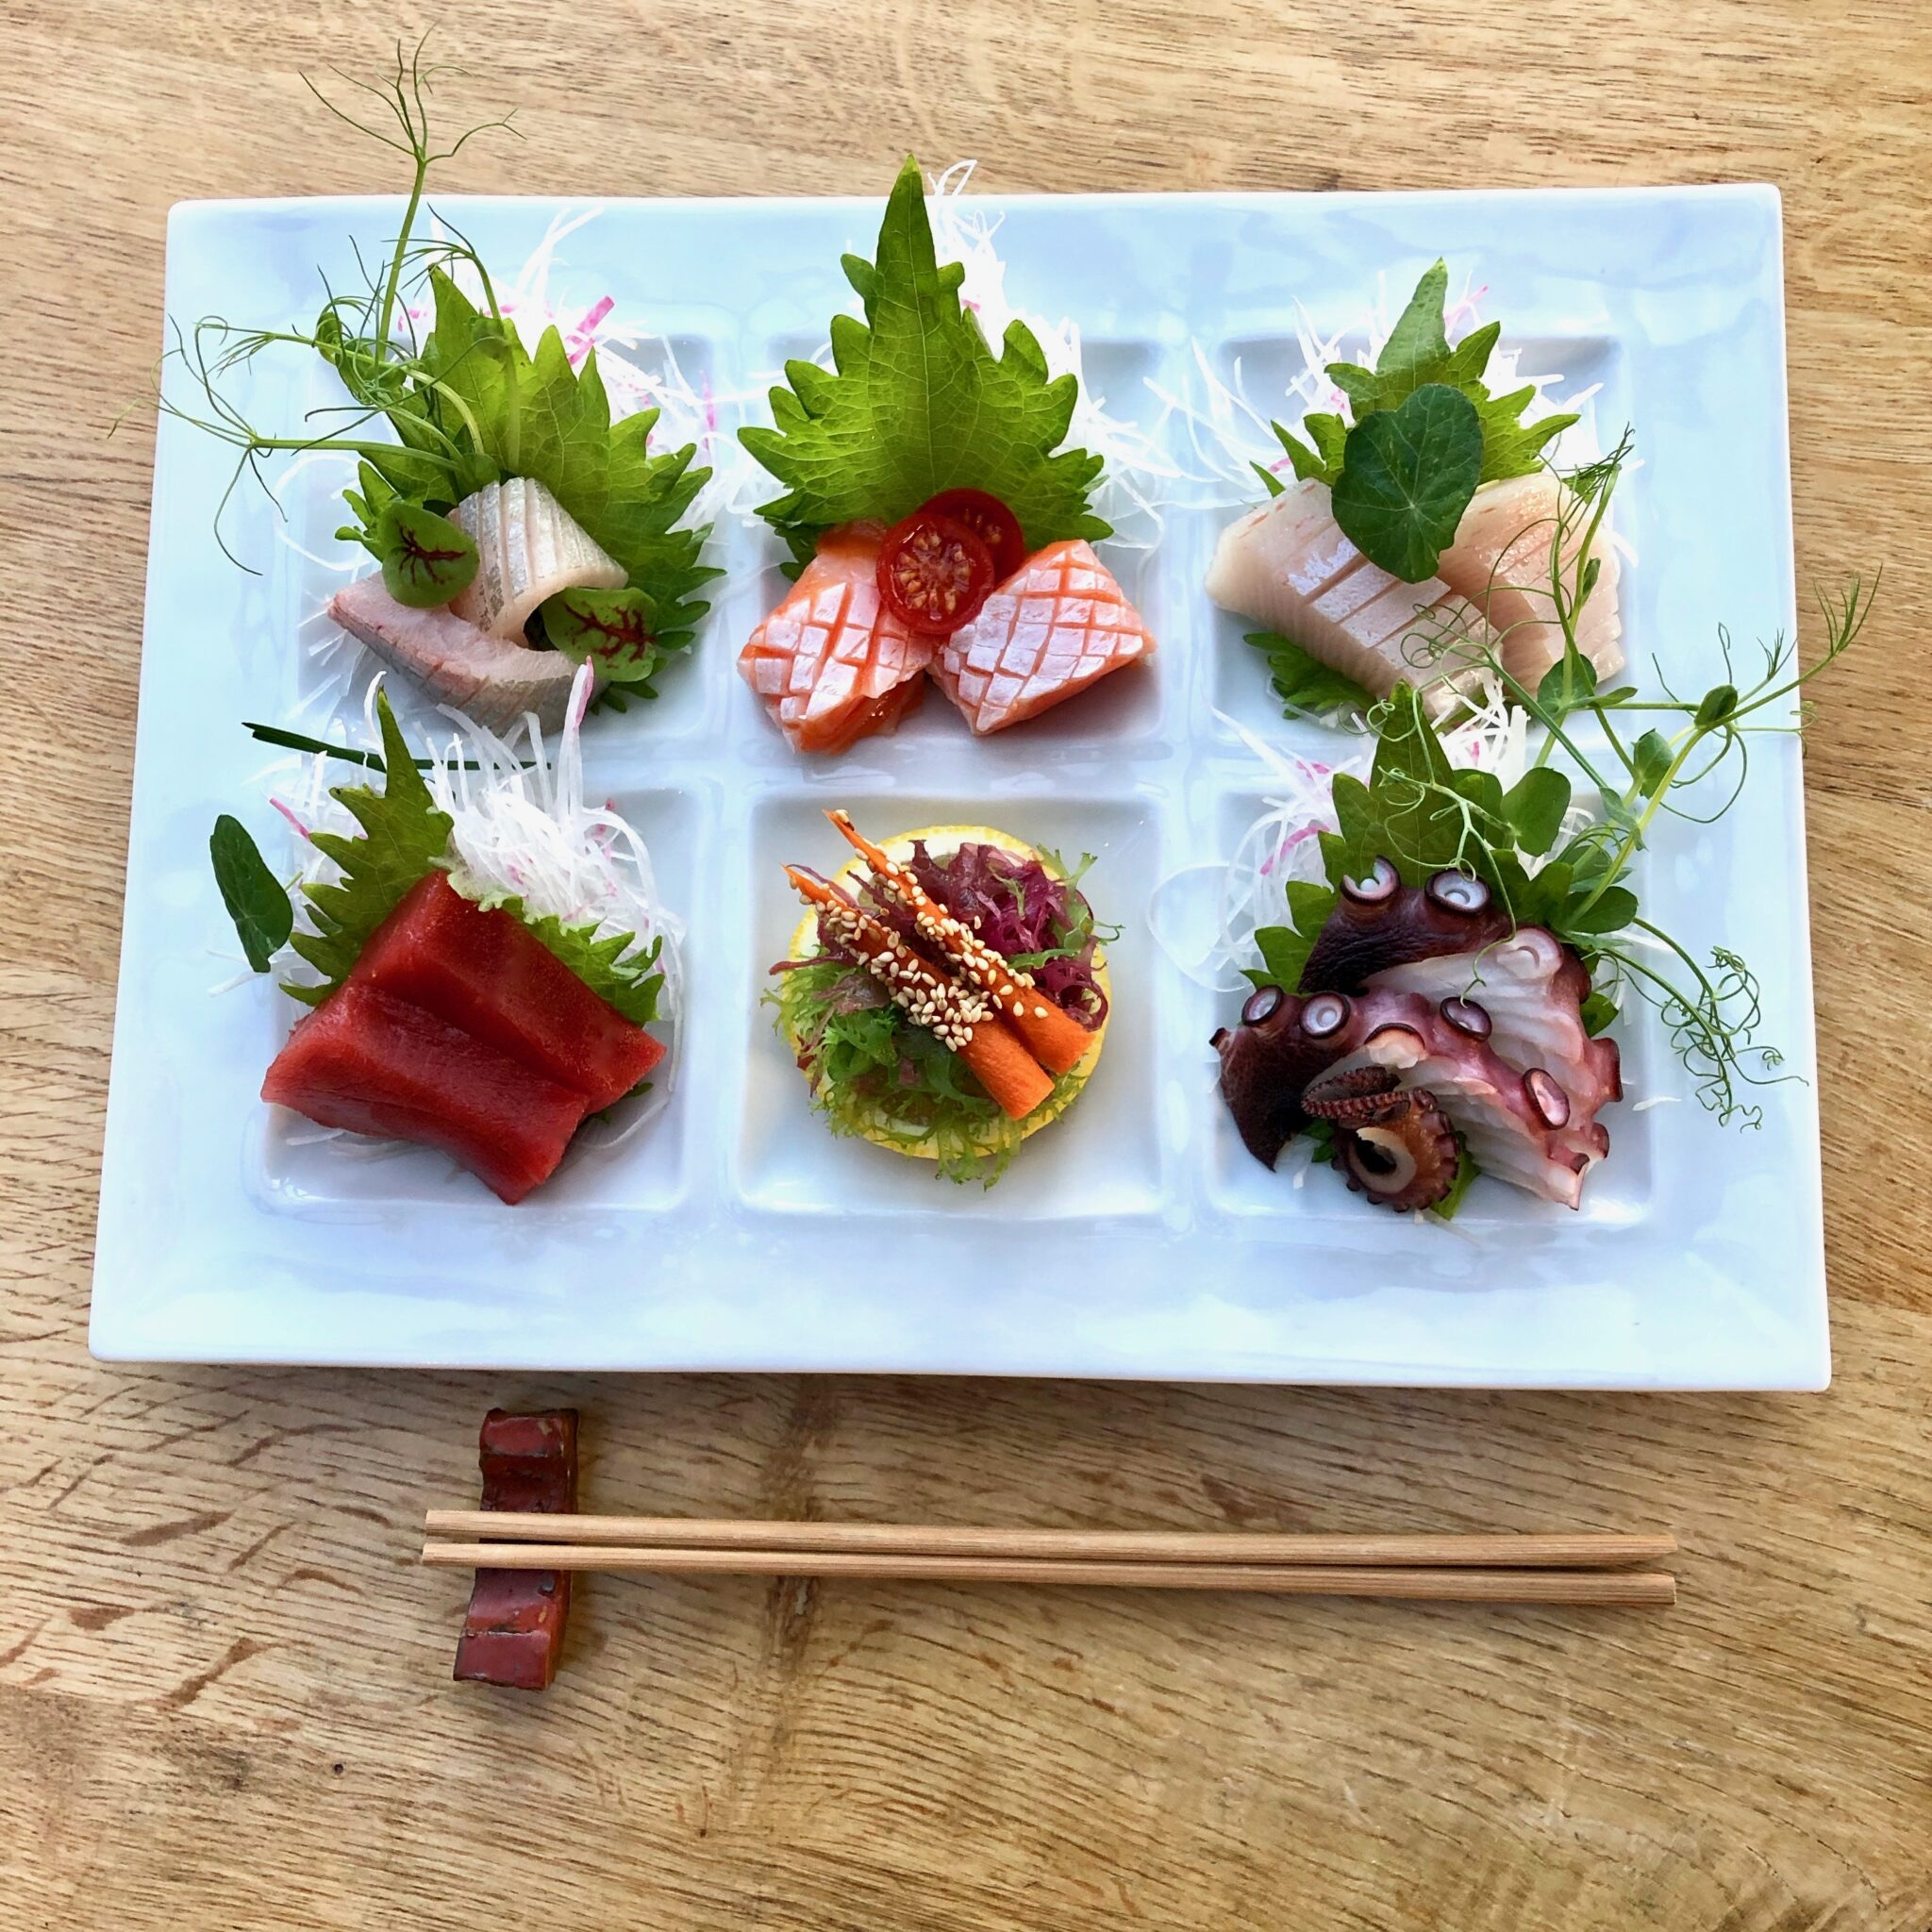 Sushi-Den-Sashimi-Lunch-2048×2048